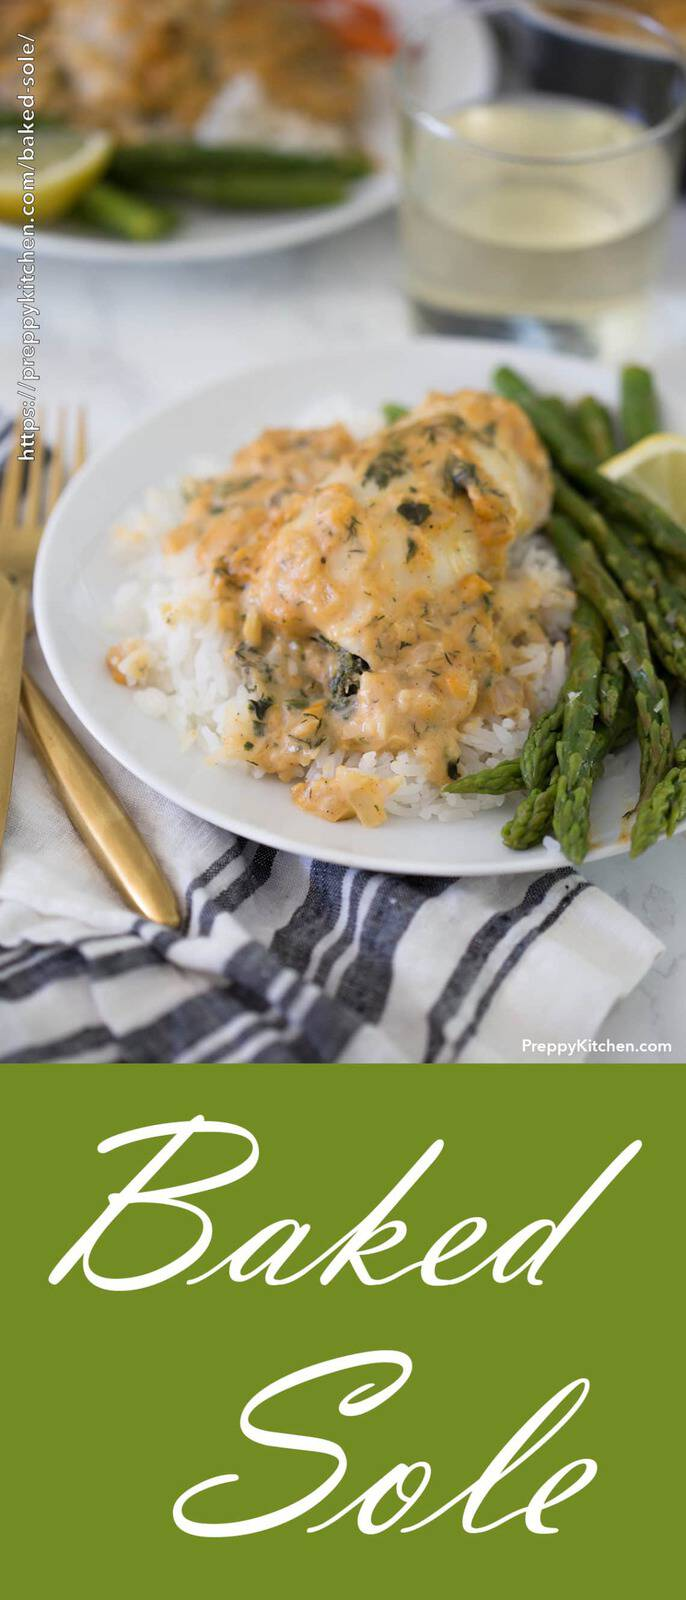 A baked sole fish on a plate with asparagus and white rice